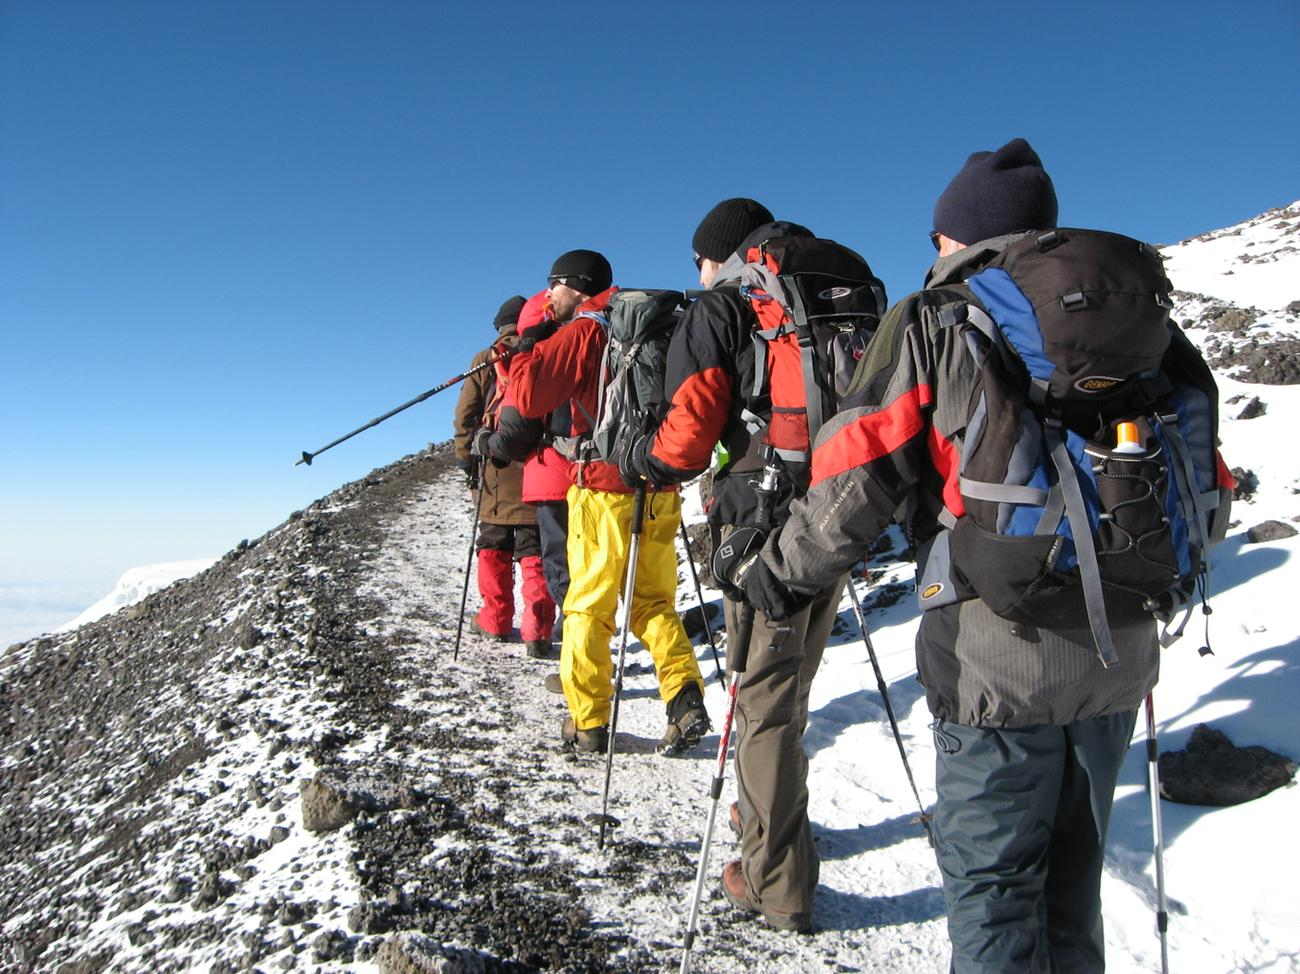 MOUNT KILIMANJARO-LEMOSHO ROUTE 7 DAYS TREKKING